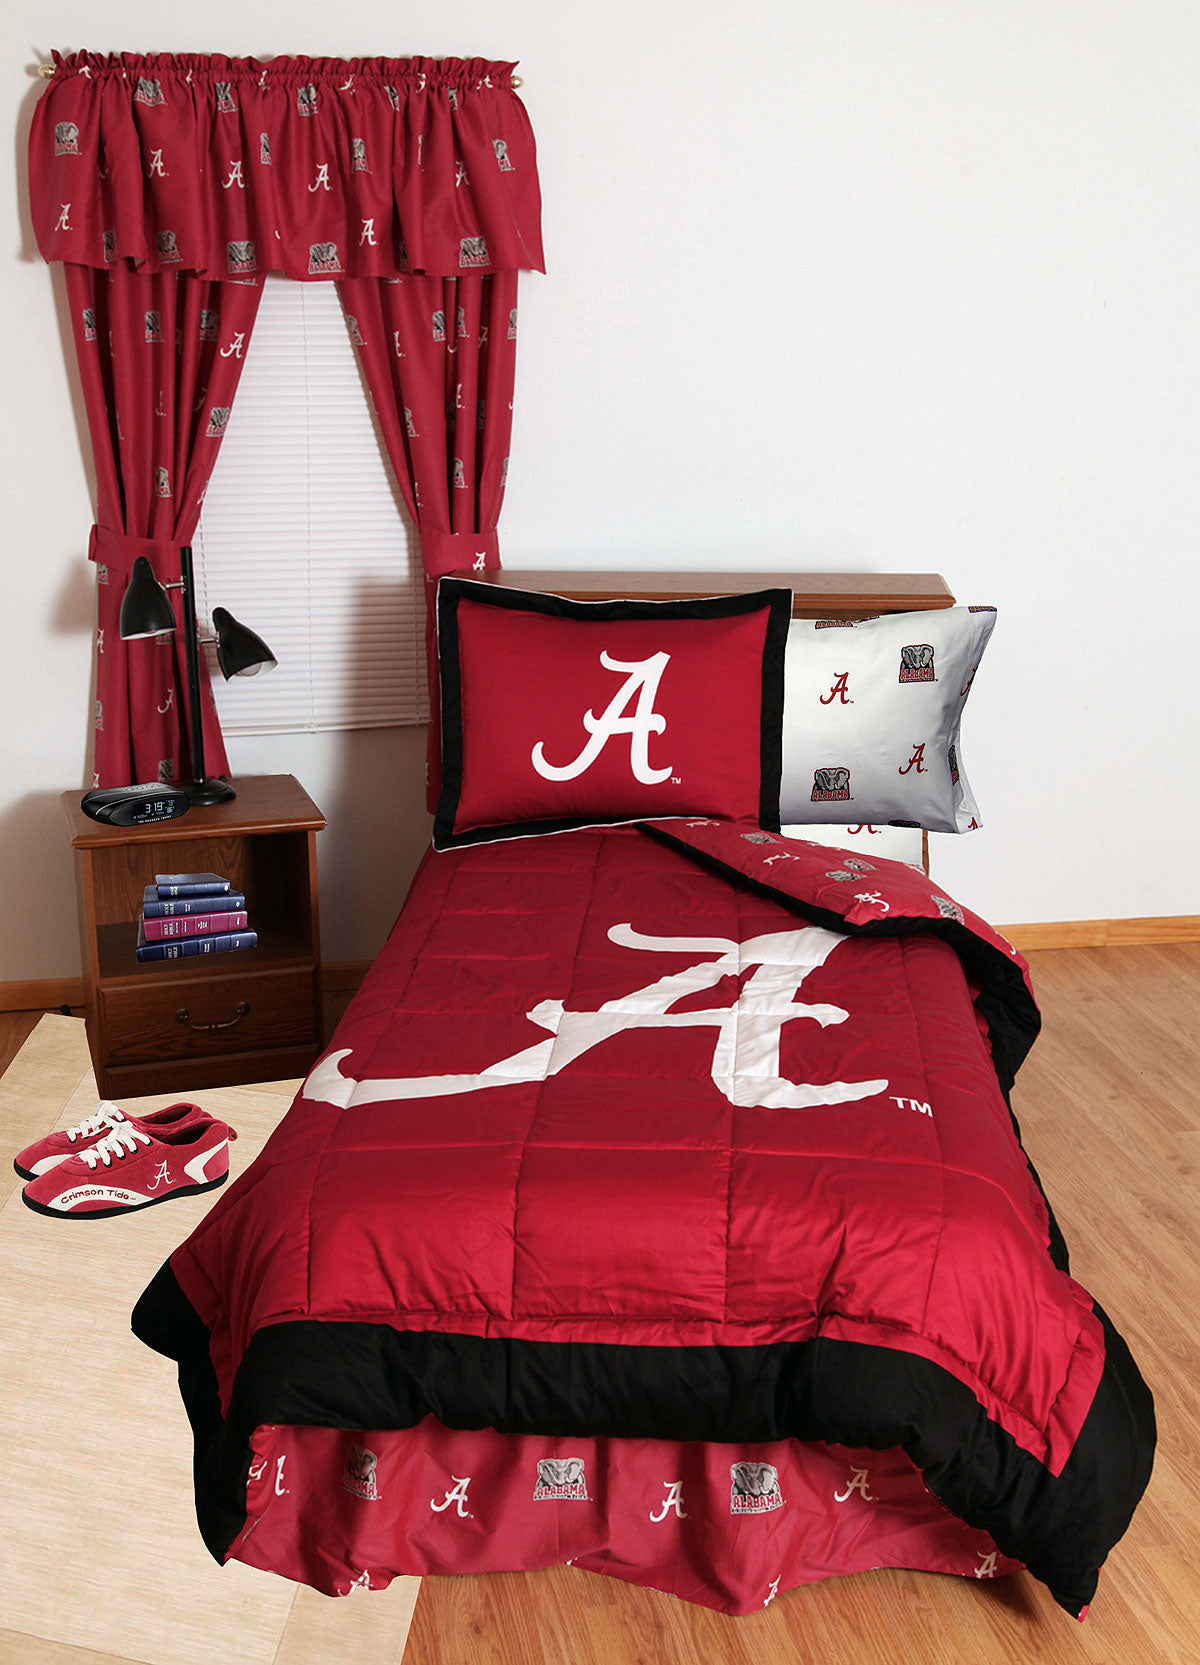 Ncaa Alabama Bedding Crimson Tide Comforter Sets Bama